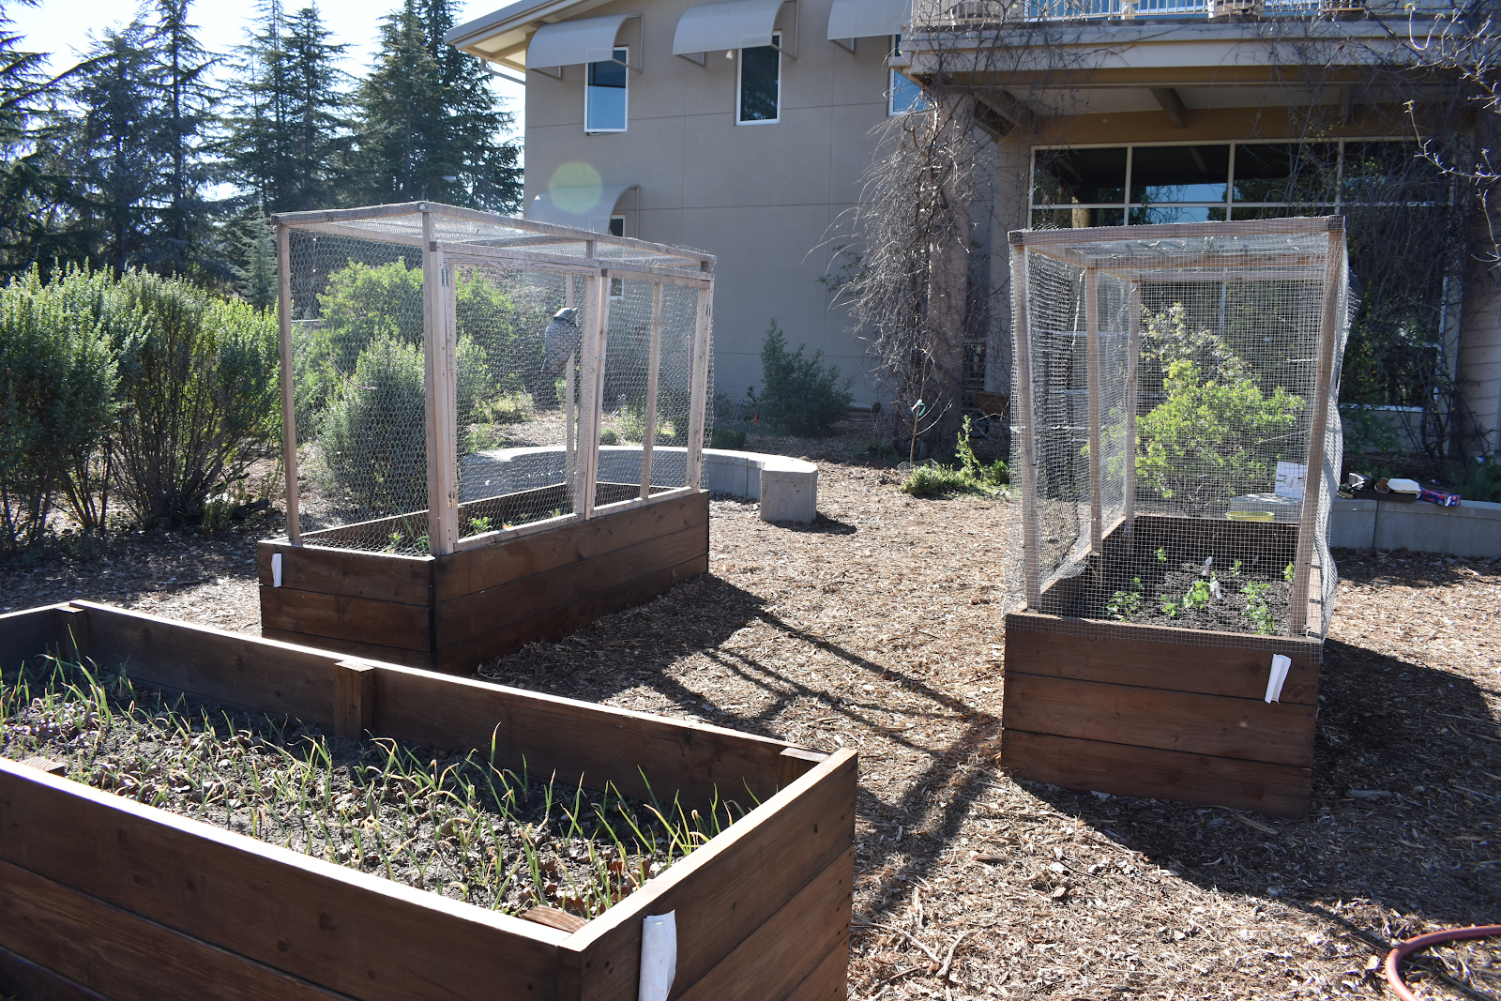 Front: A raised bed containing spring onions for the cafeteria. Back: Two raised beds containing a variety of foods such as kale, butter lettuce, strawberries, tomato, peas, mint, snow peas, etc.